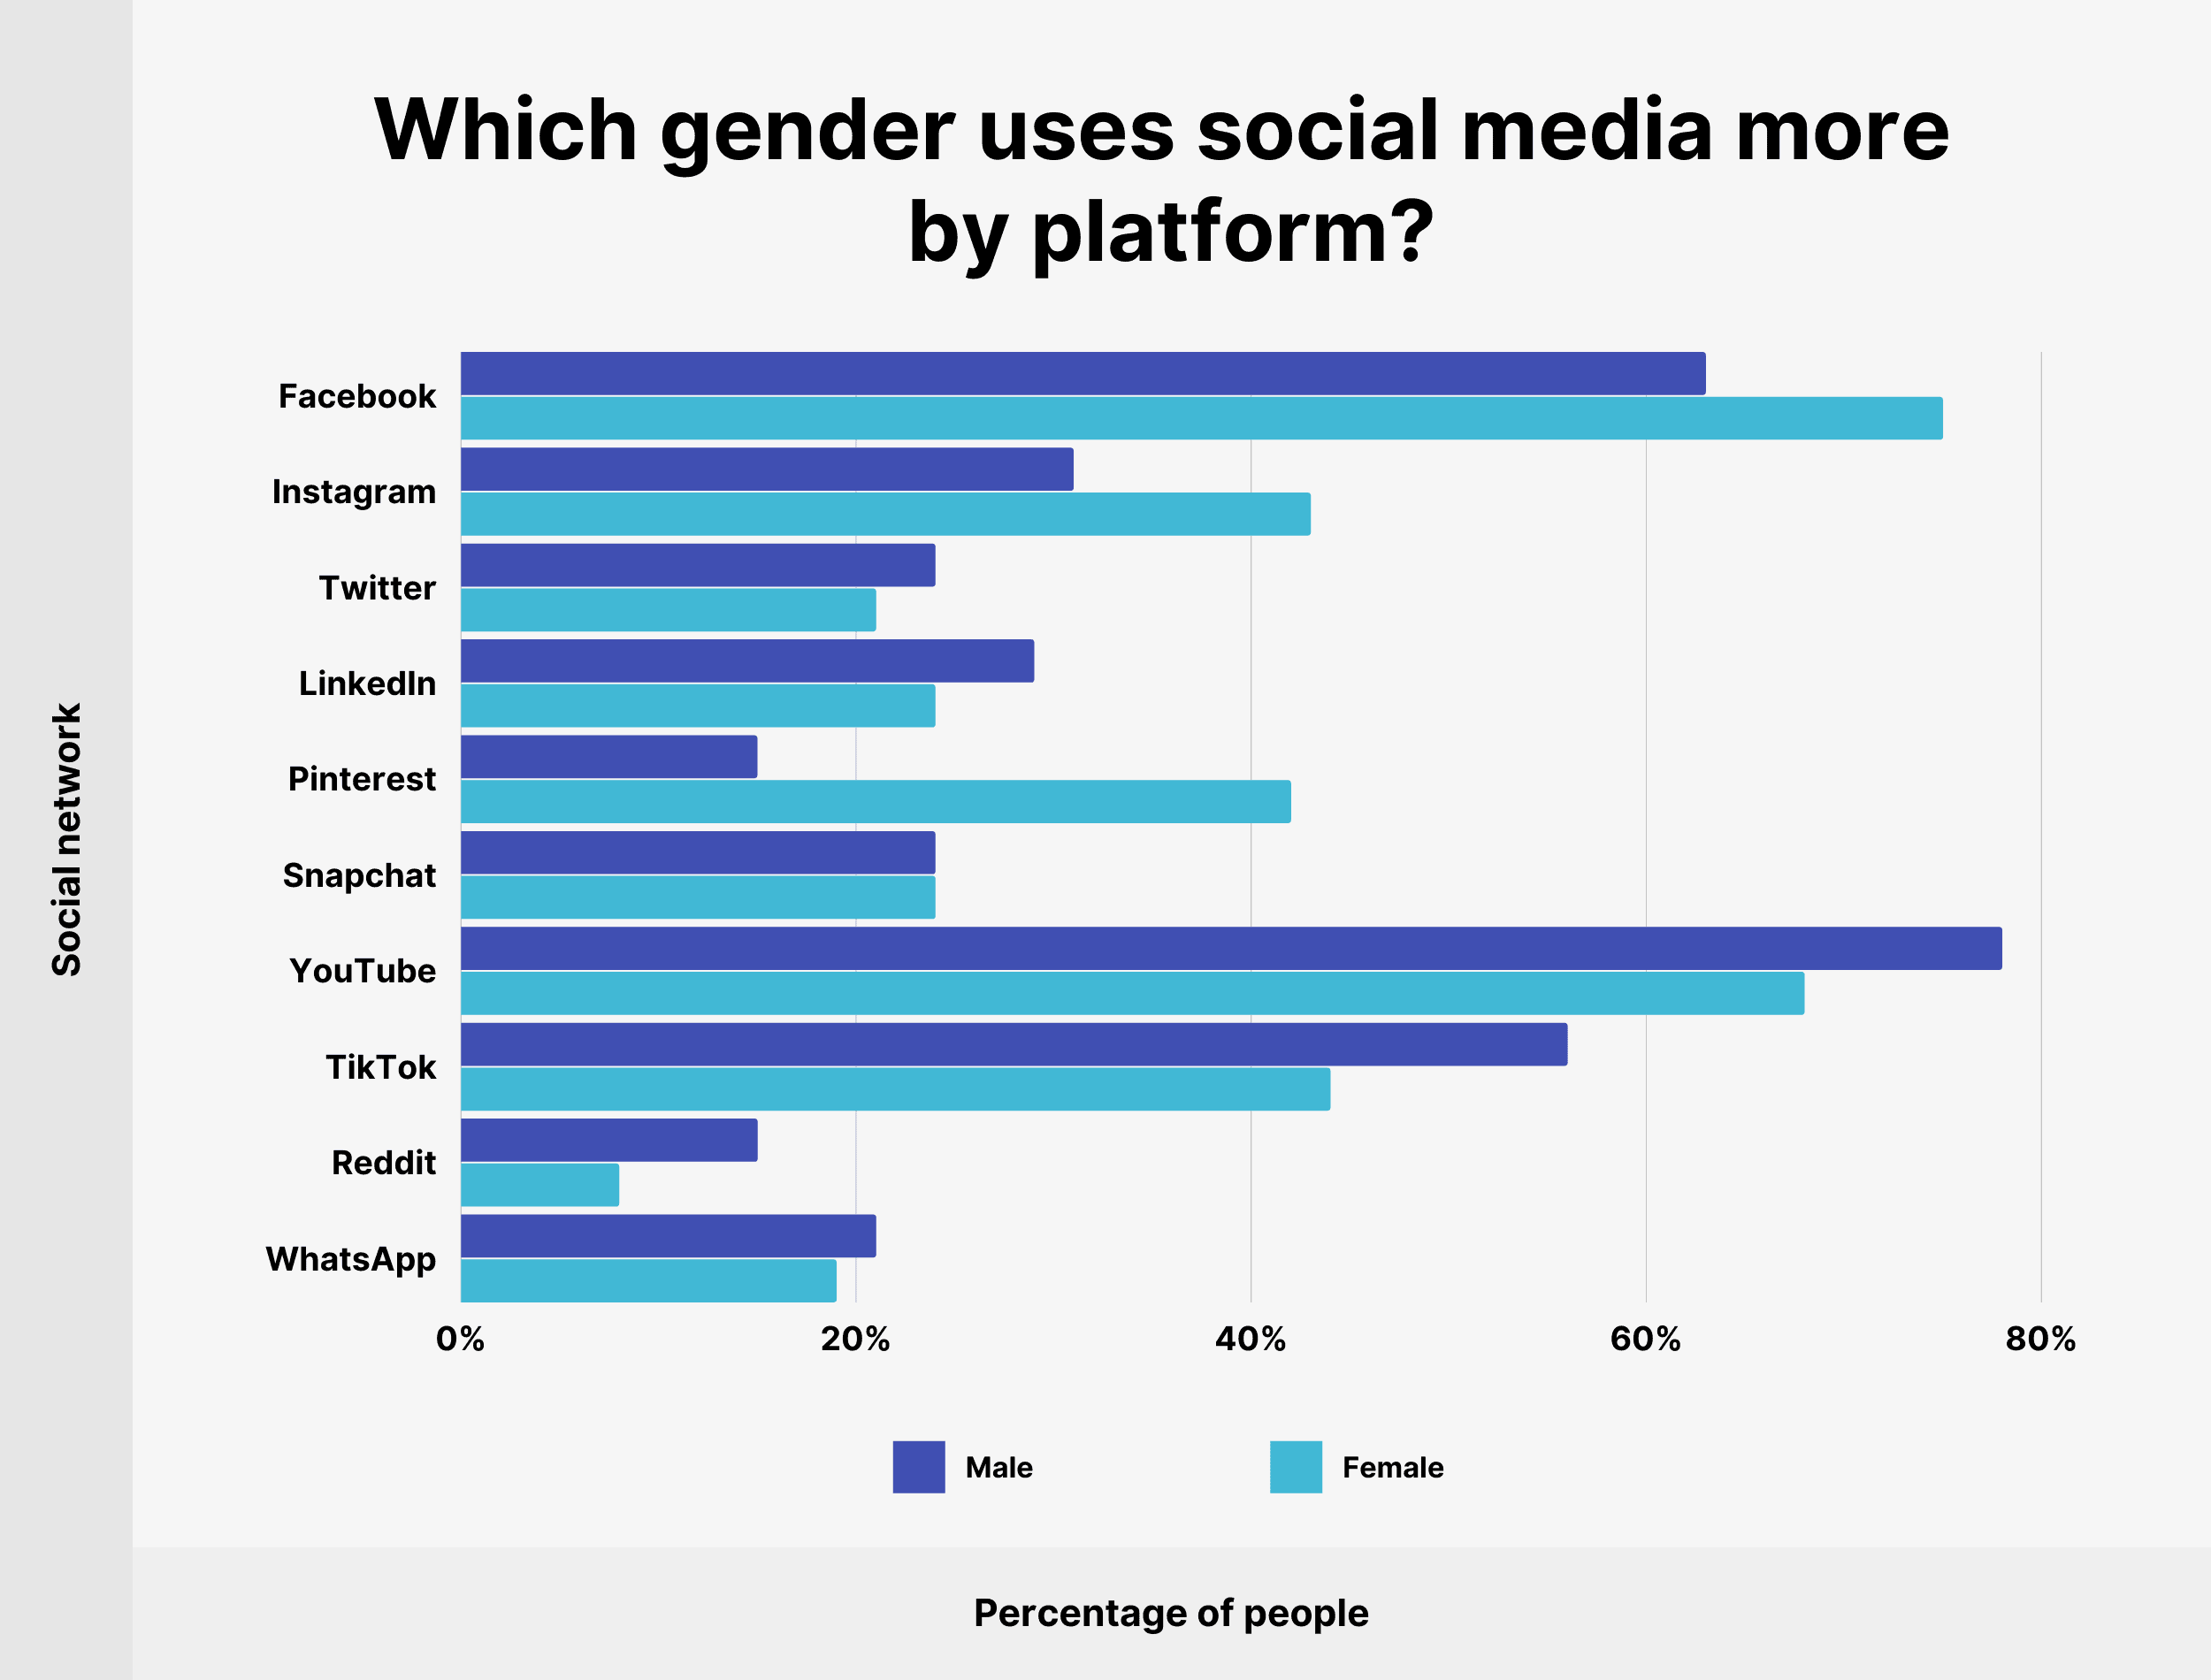 Which gender uses social media more by platform?